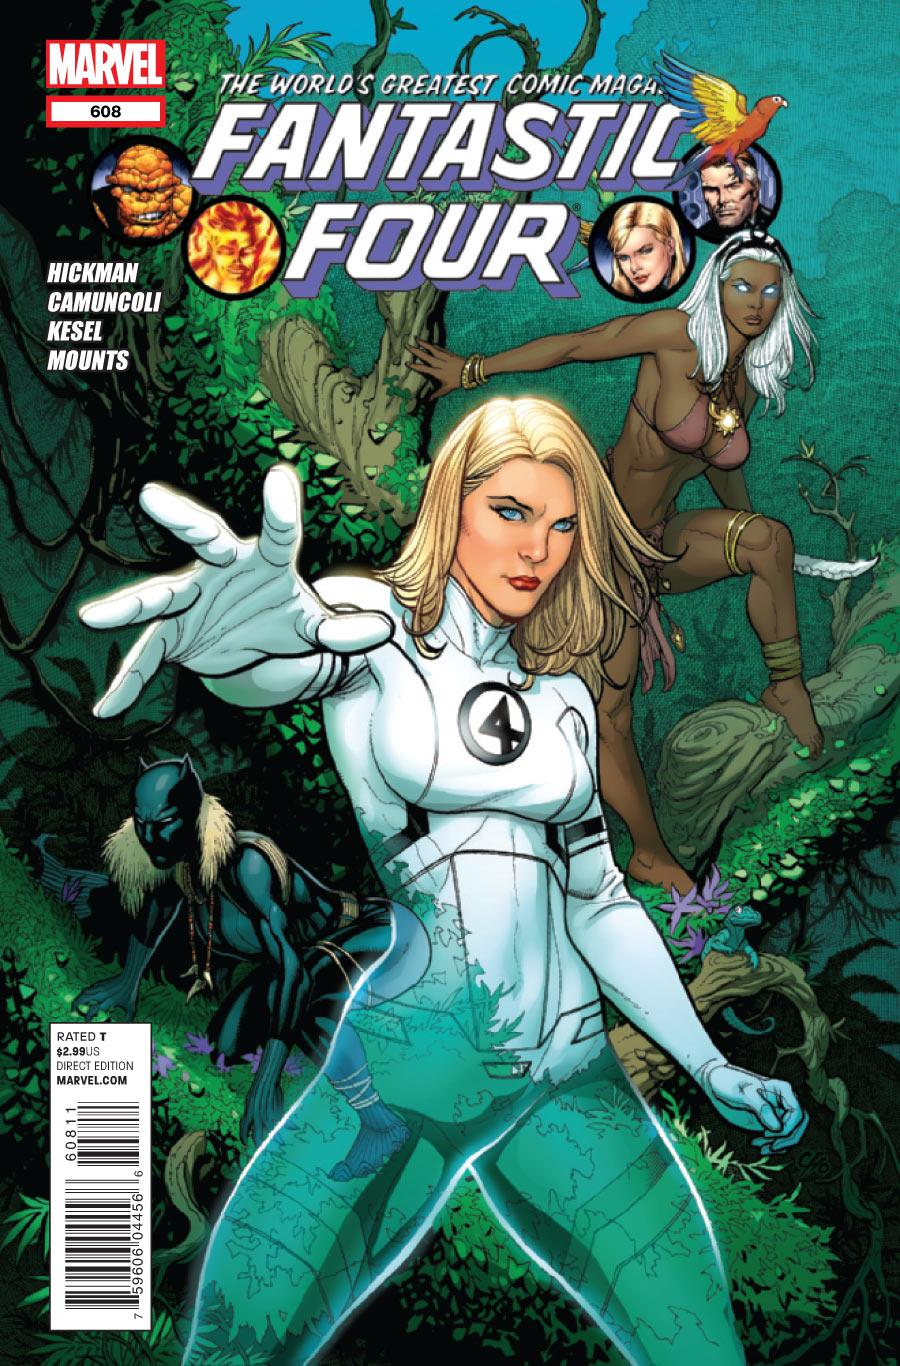 Fantastic Four Vol. 1 #608